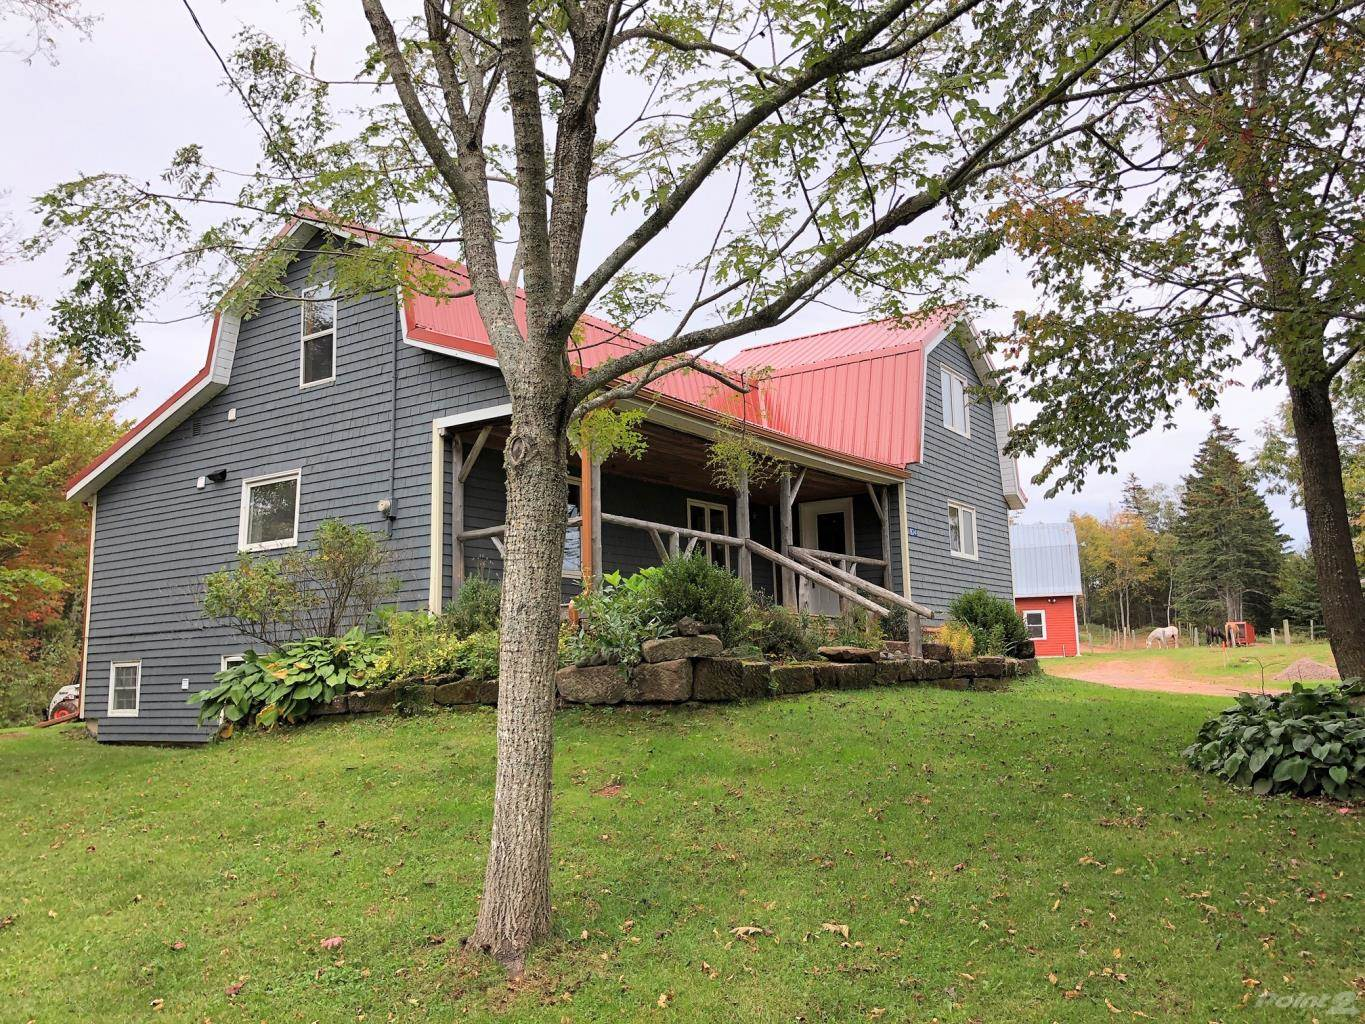 House for sale Hunter River, Canada 934 New Orleans Road